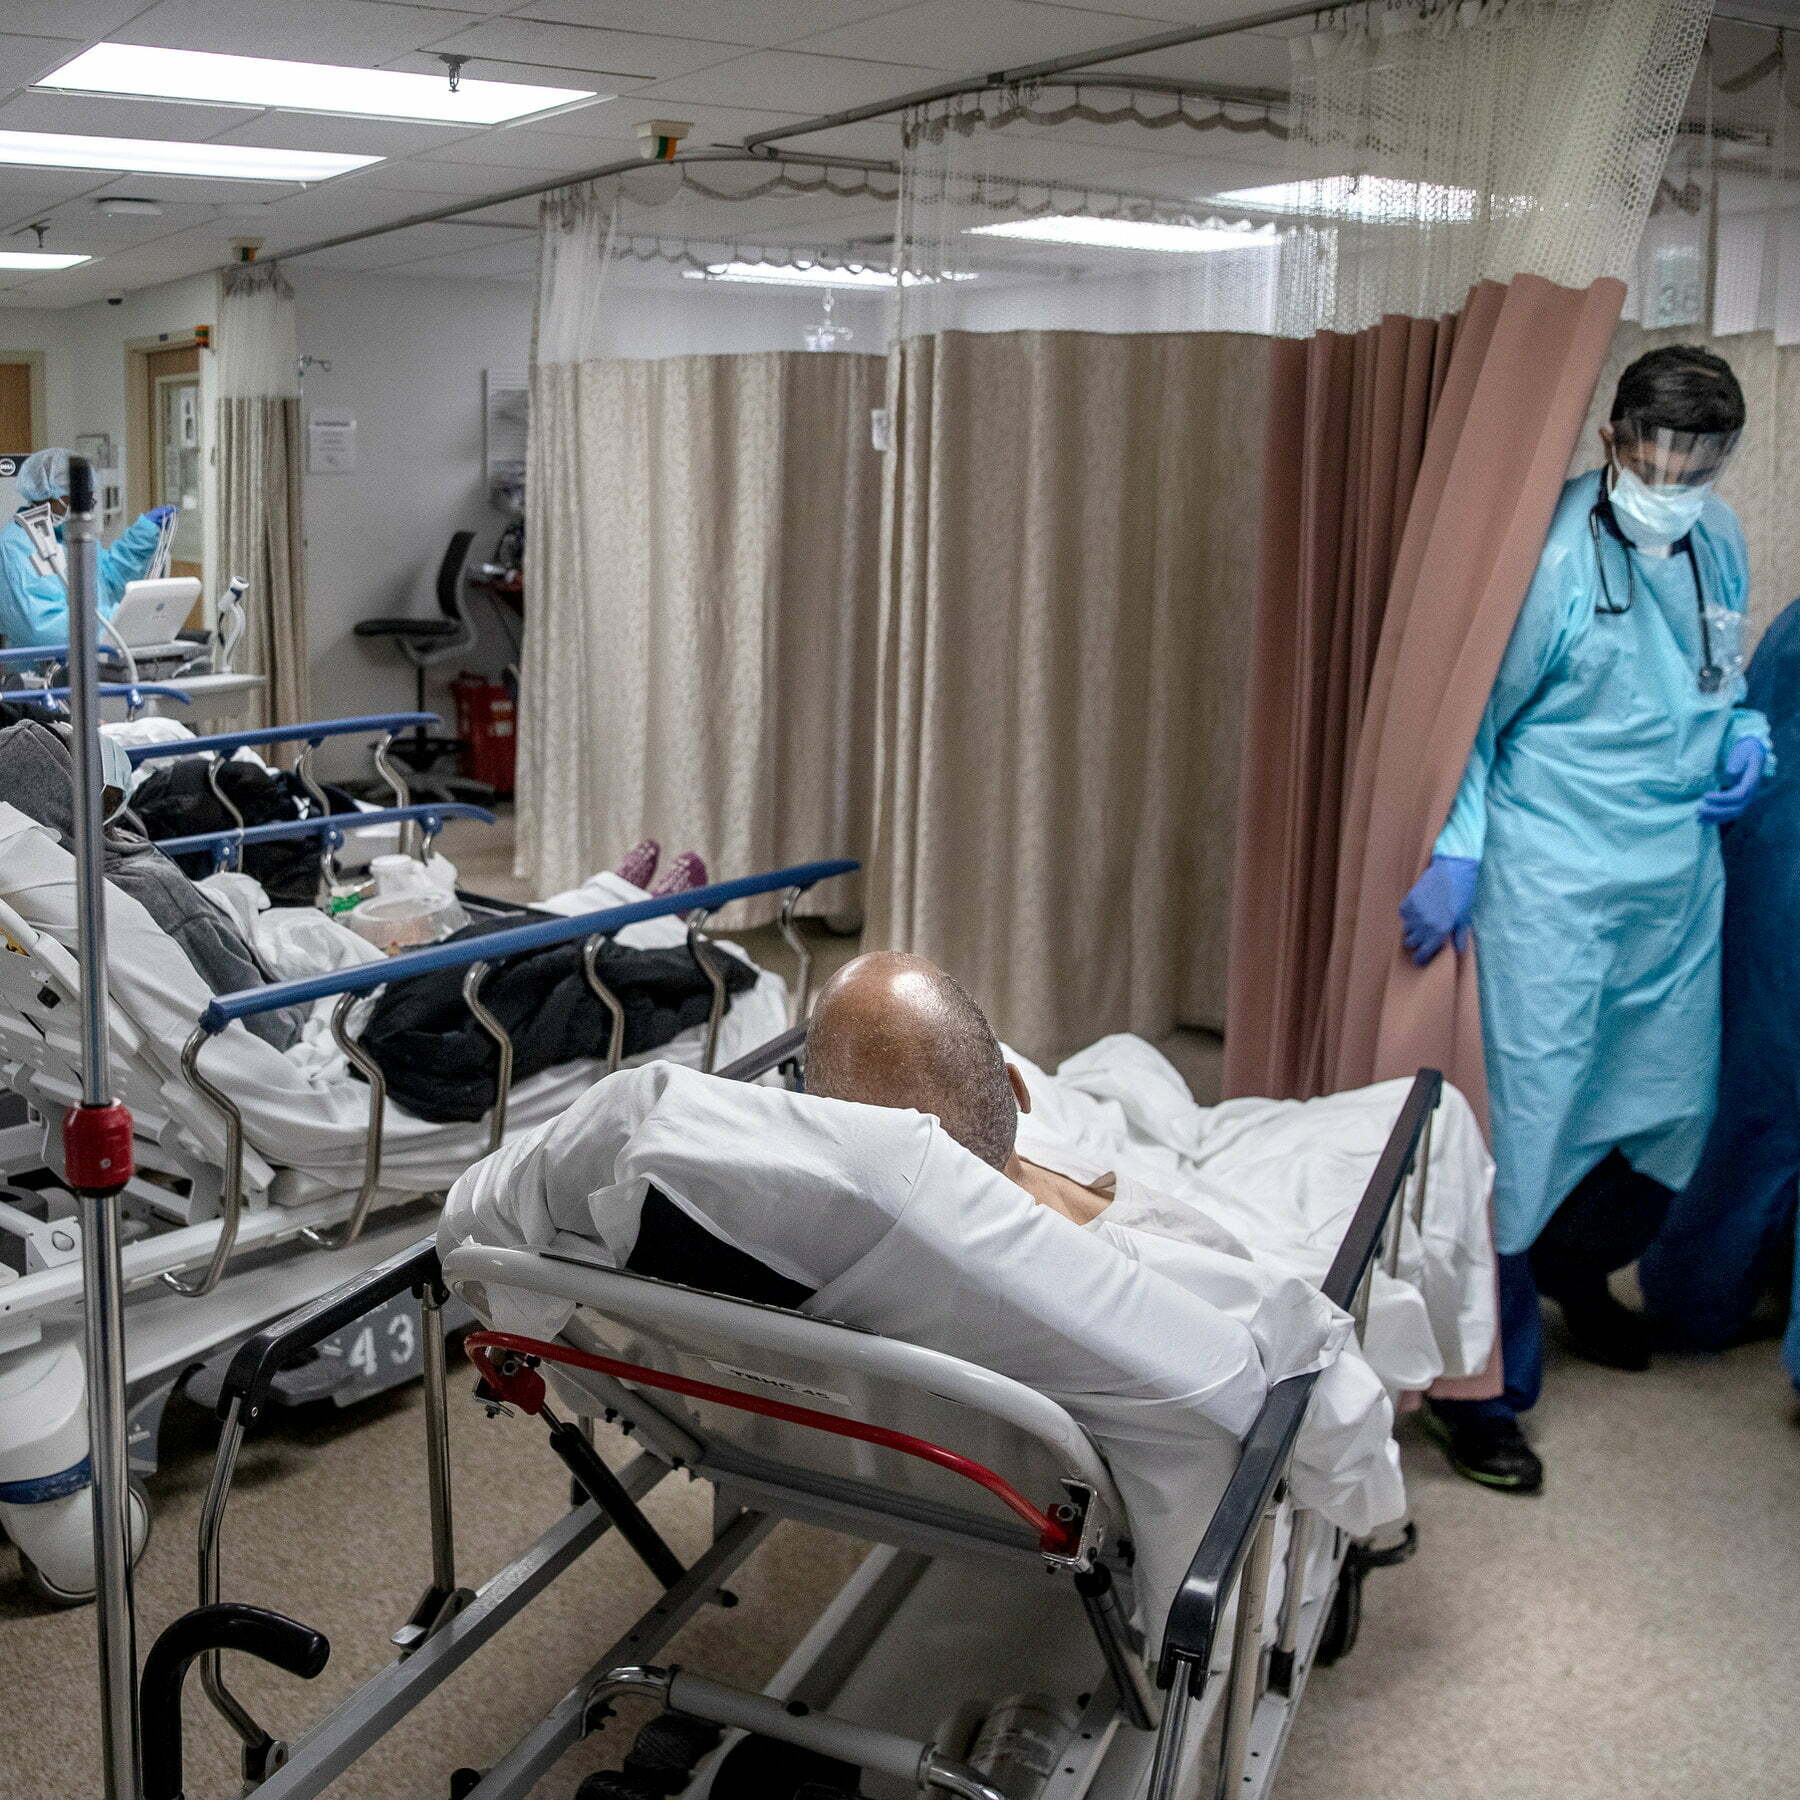 ER Visits Down As Patients Worry About COVID-19 4